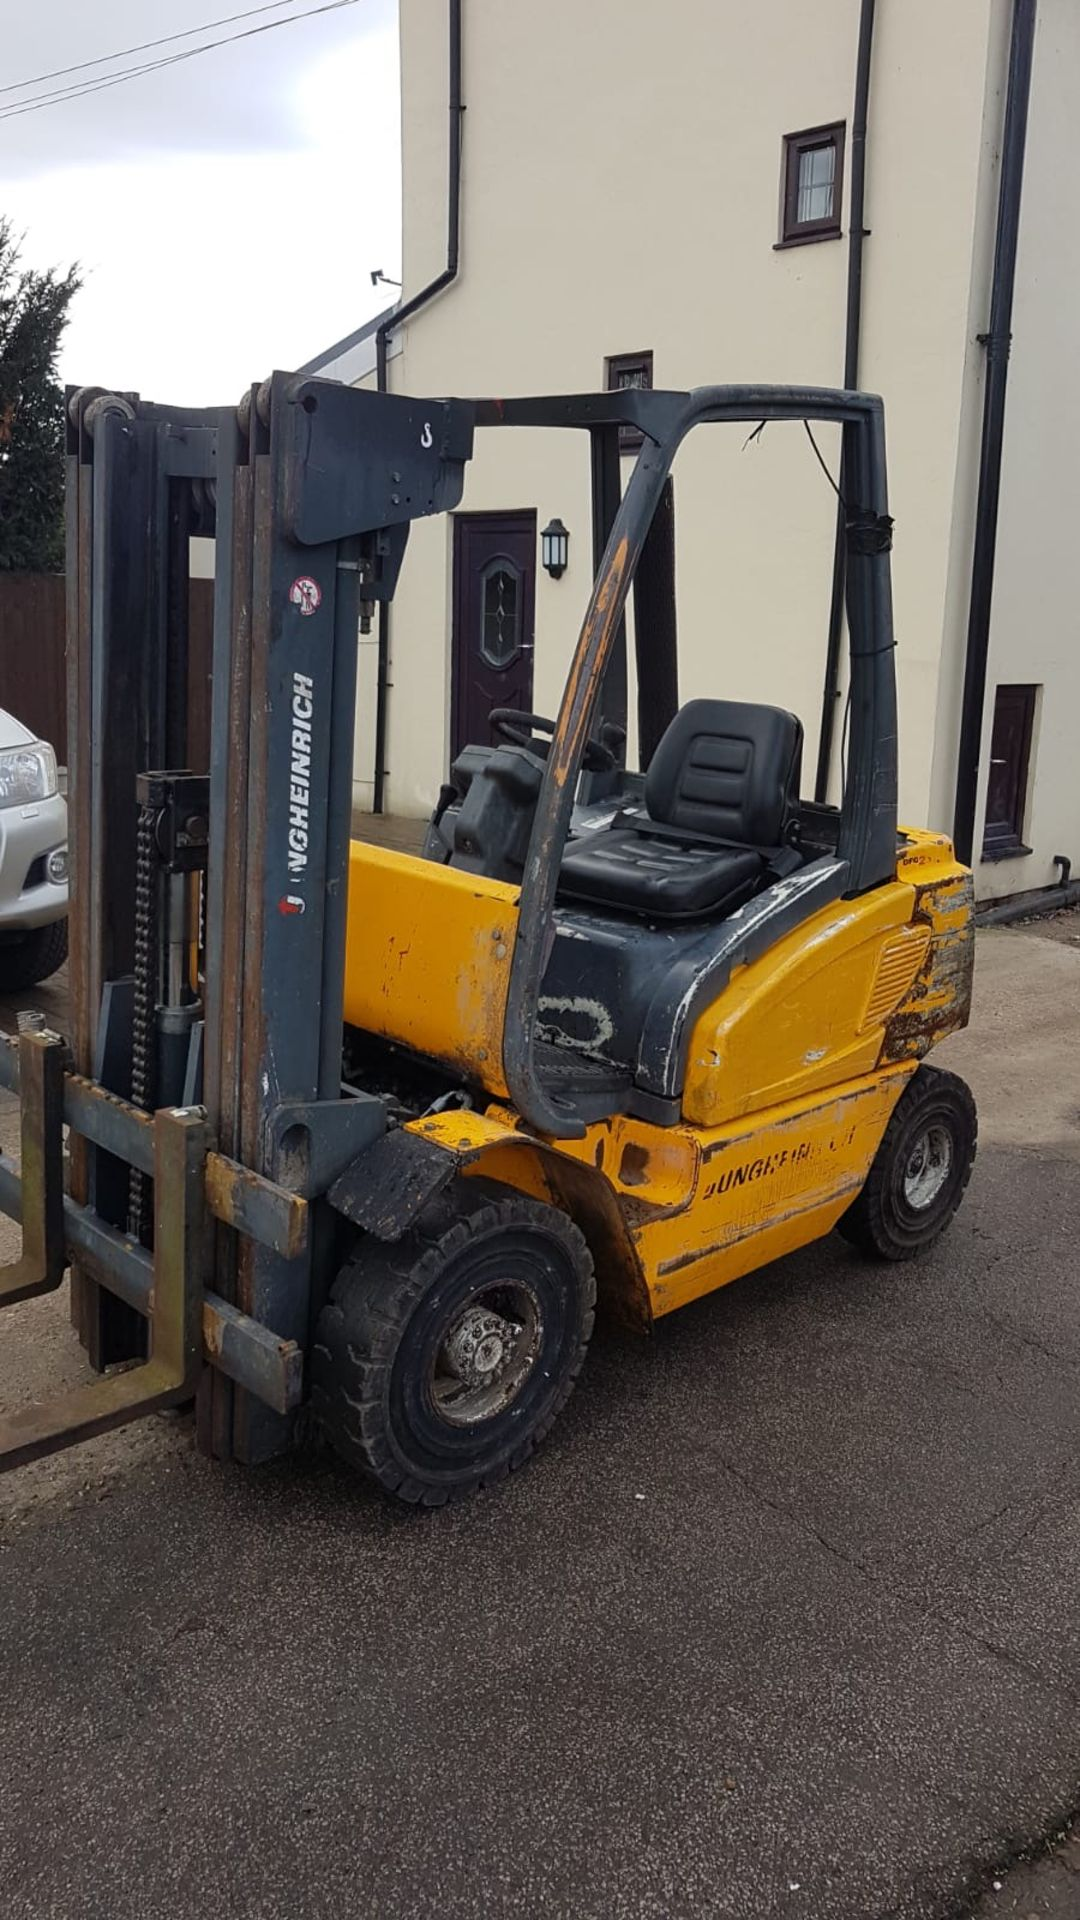 Lot 107 - JUNGHEINRICH DFG25 DIESEL POWERED FORKLIFT TRUCK, CONTAINER SPEC 3 STAGE MAST, 2.5 TONNE RATED